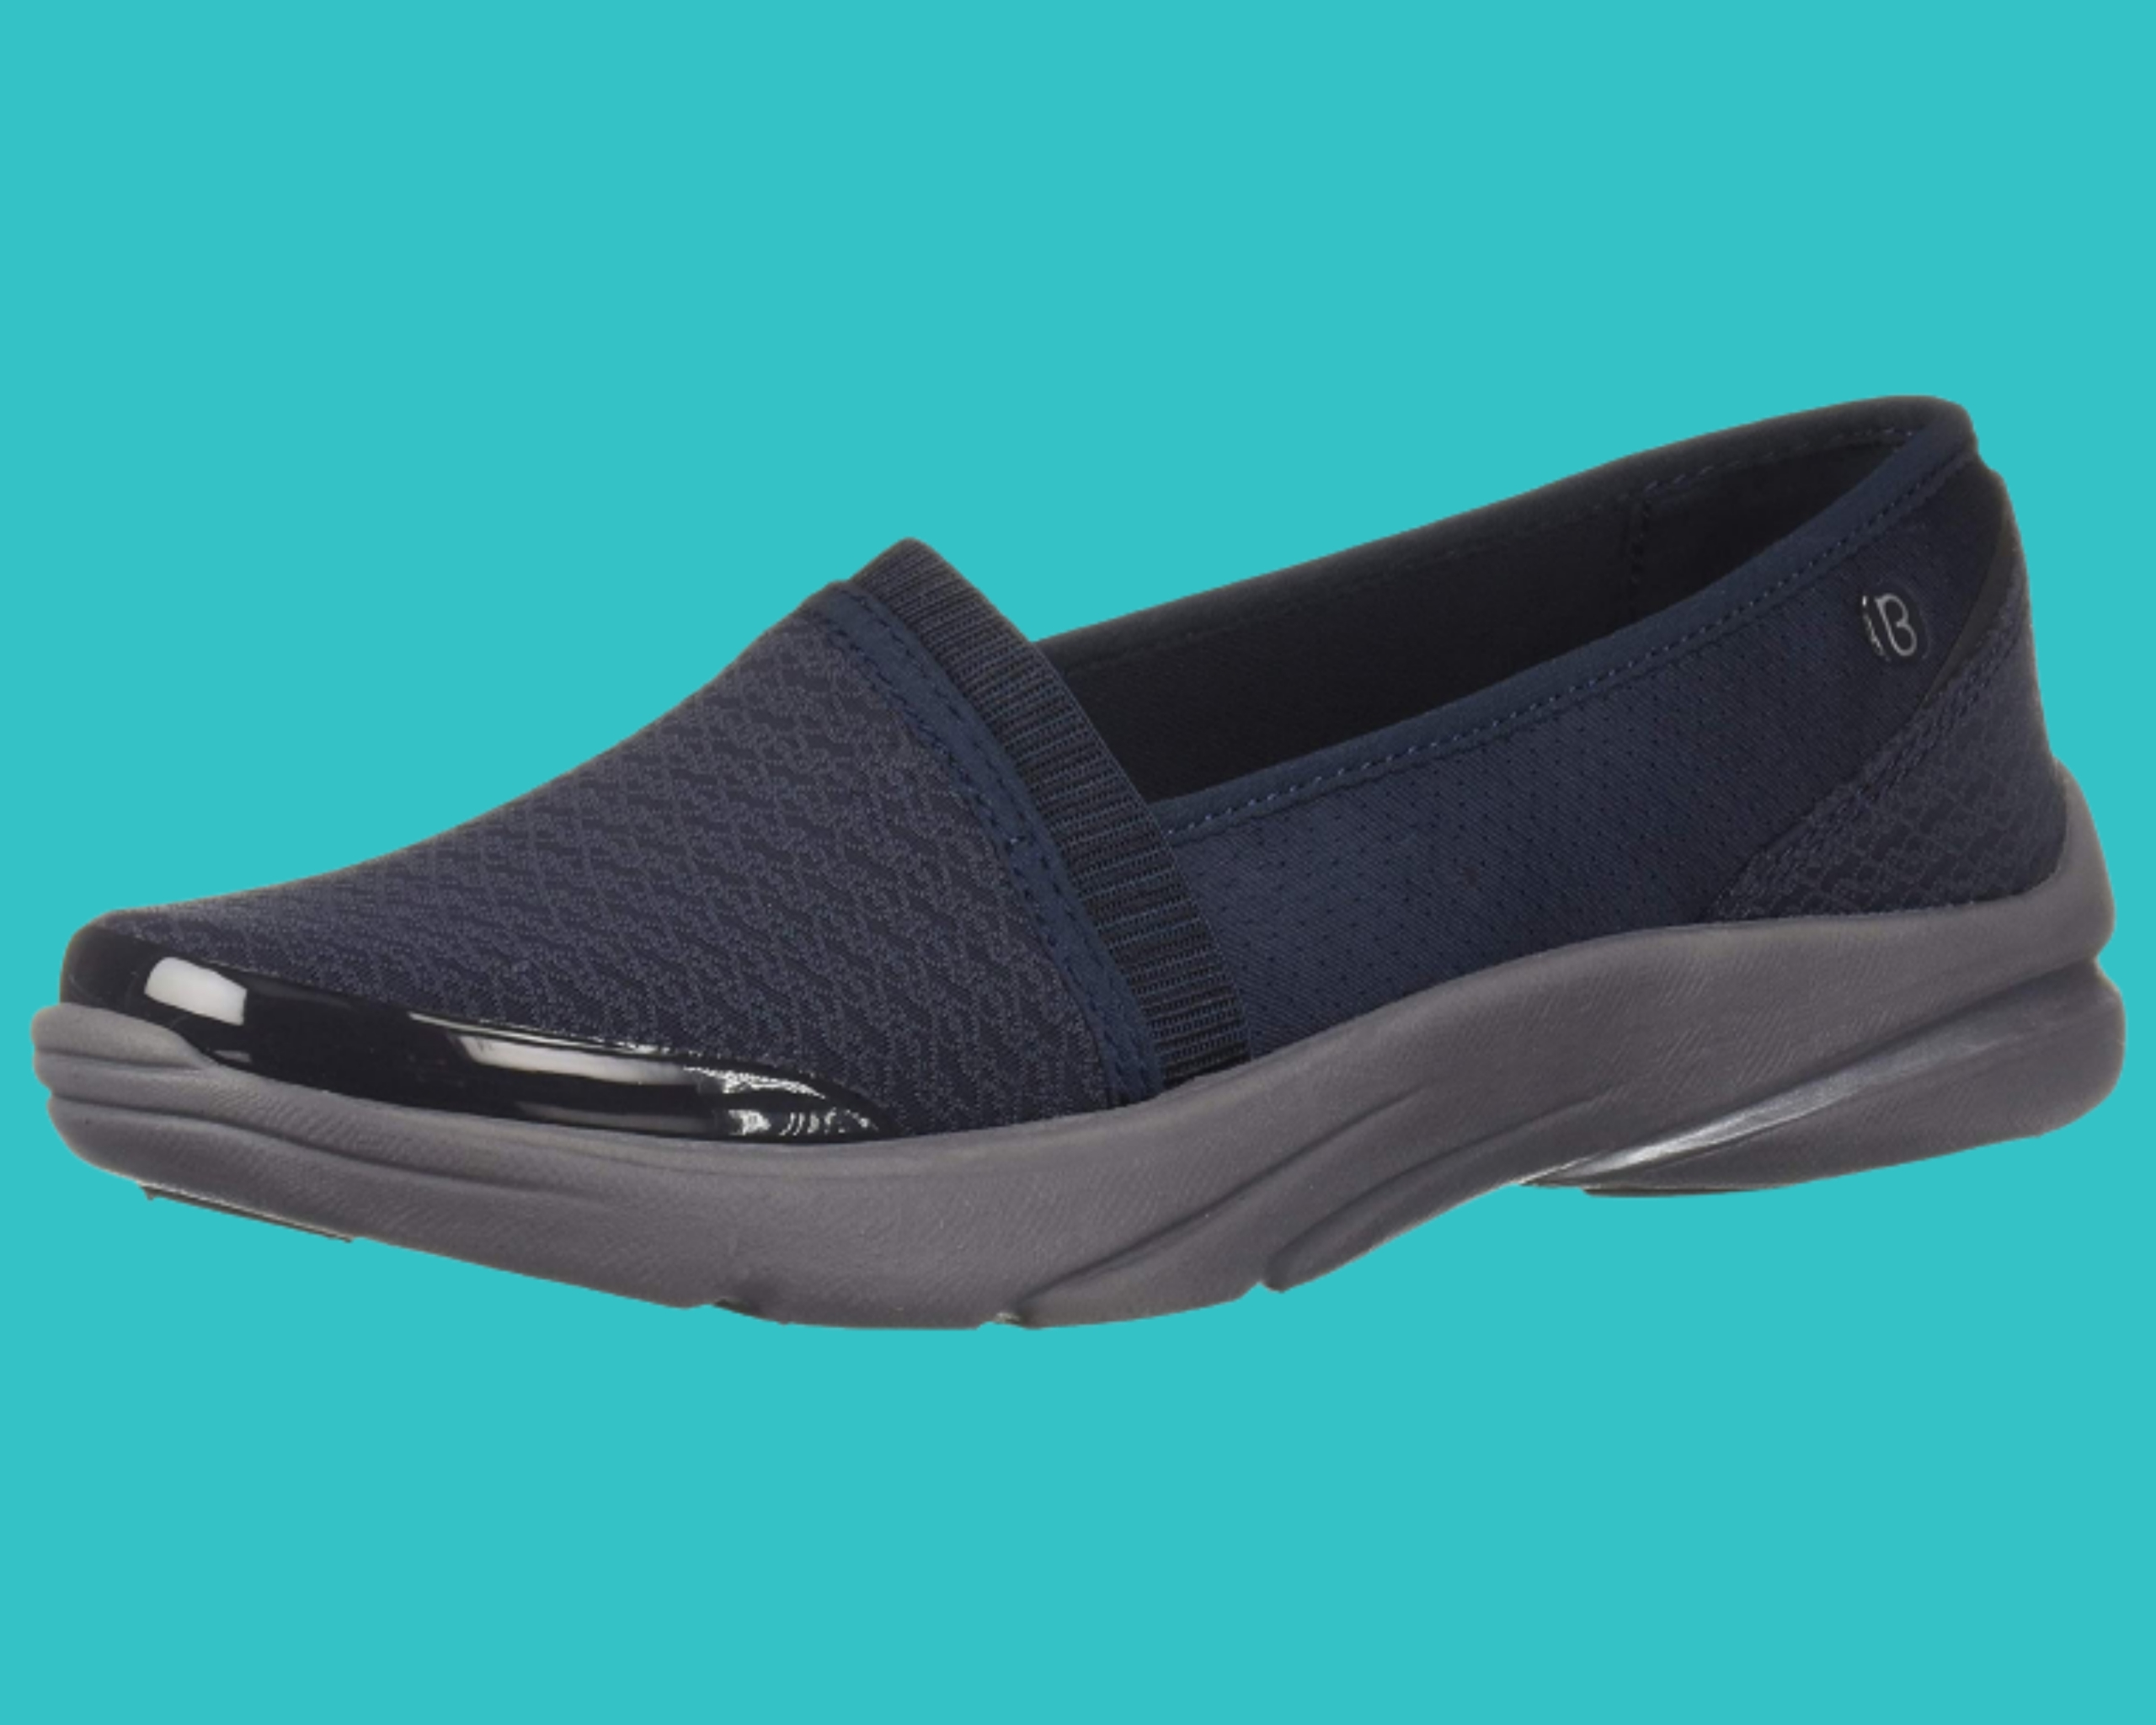 Best shoe for an expectant mother